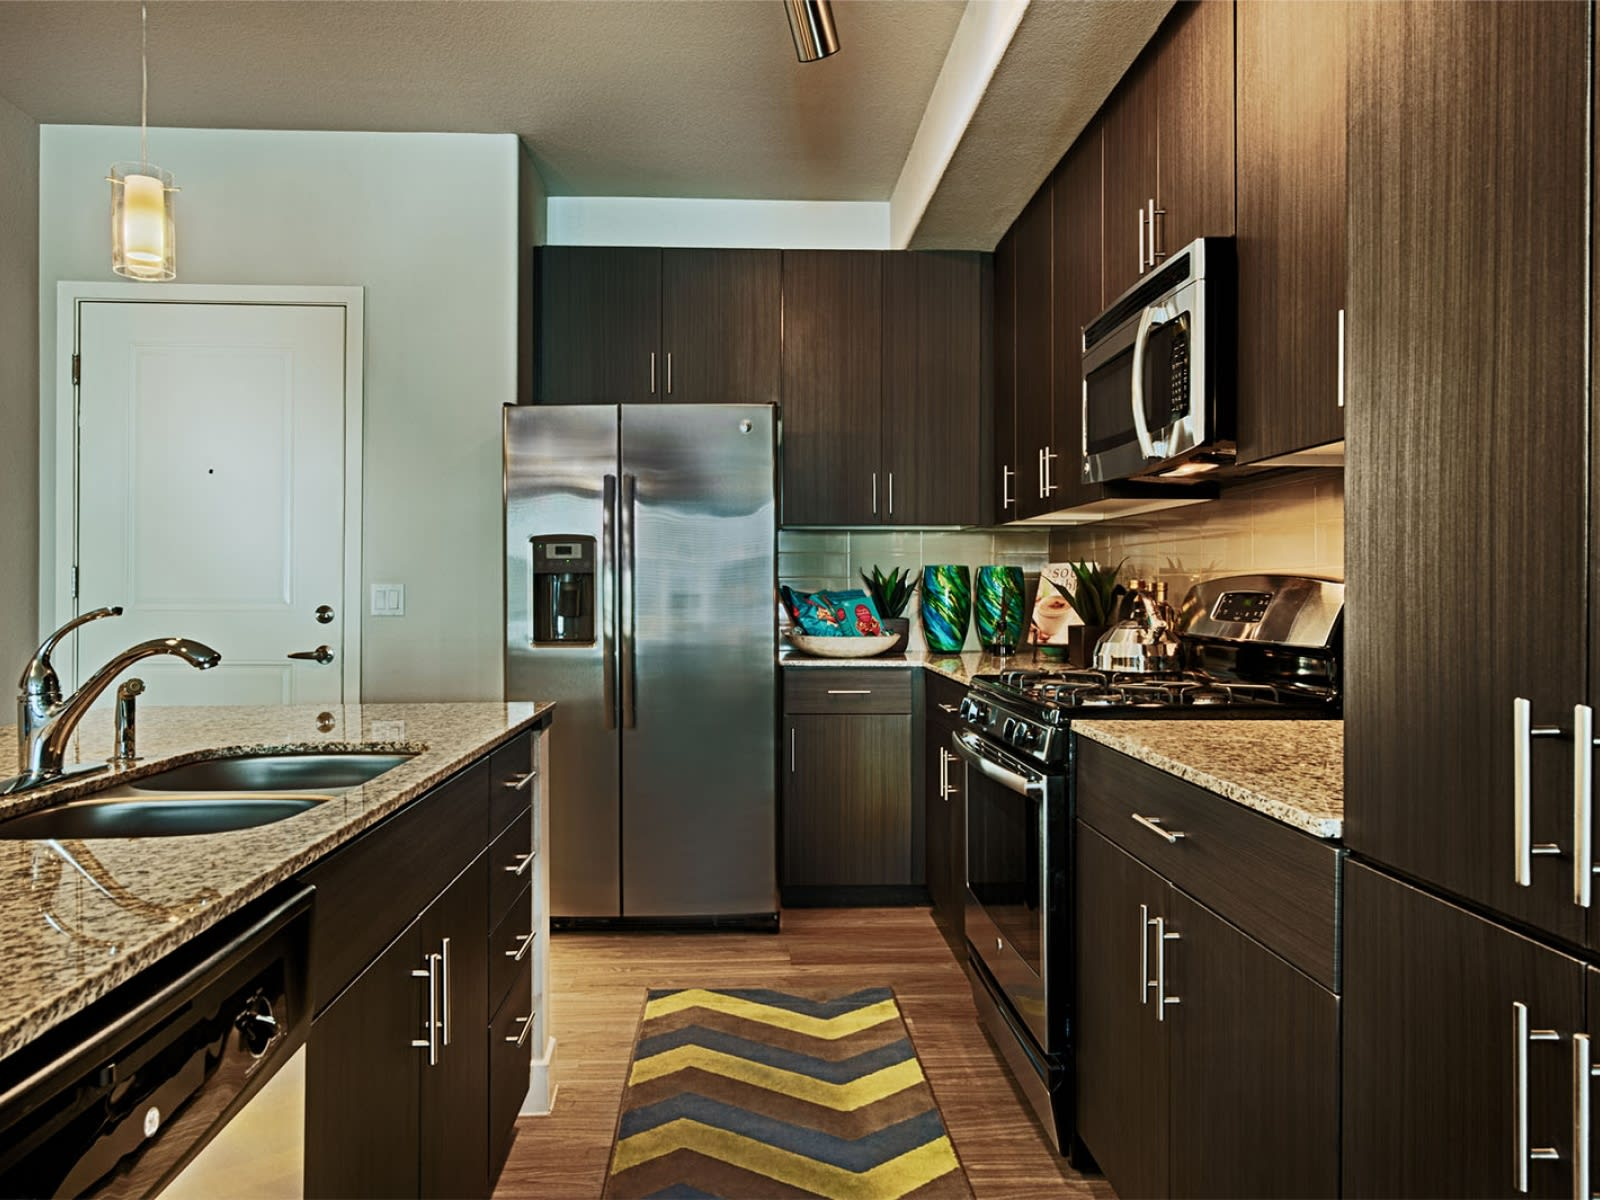 Tempe Arizona Apartments - Skywater at Town Lake Kitchen with Matching Appliances and Storage Space